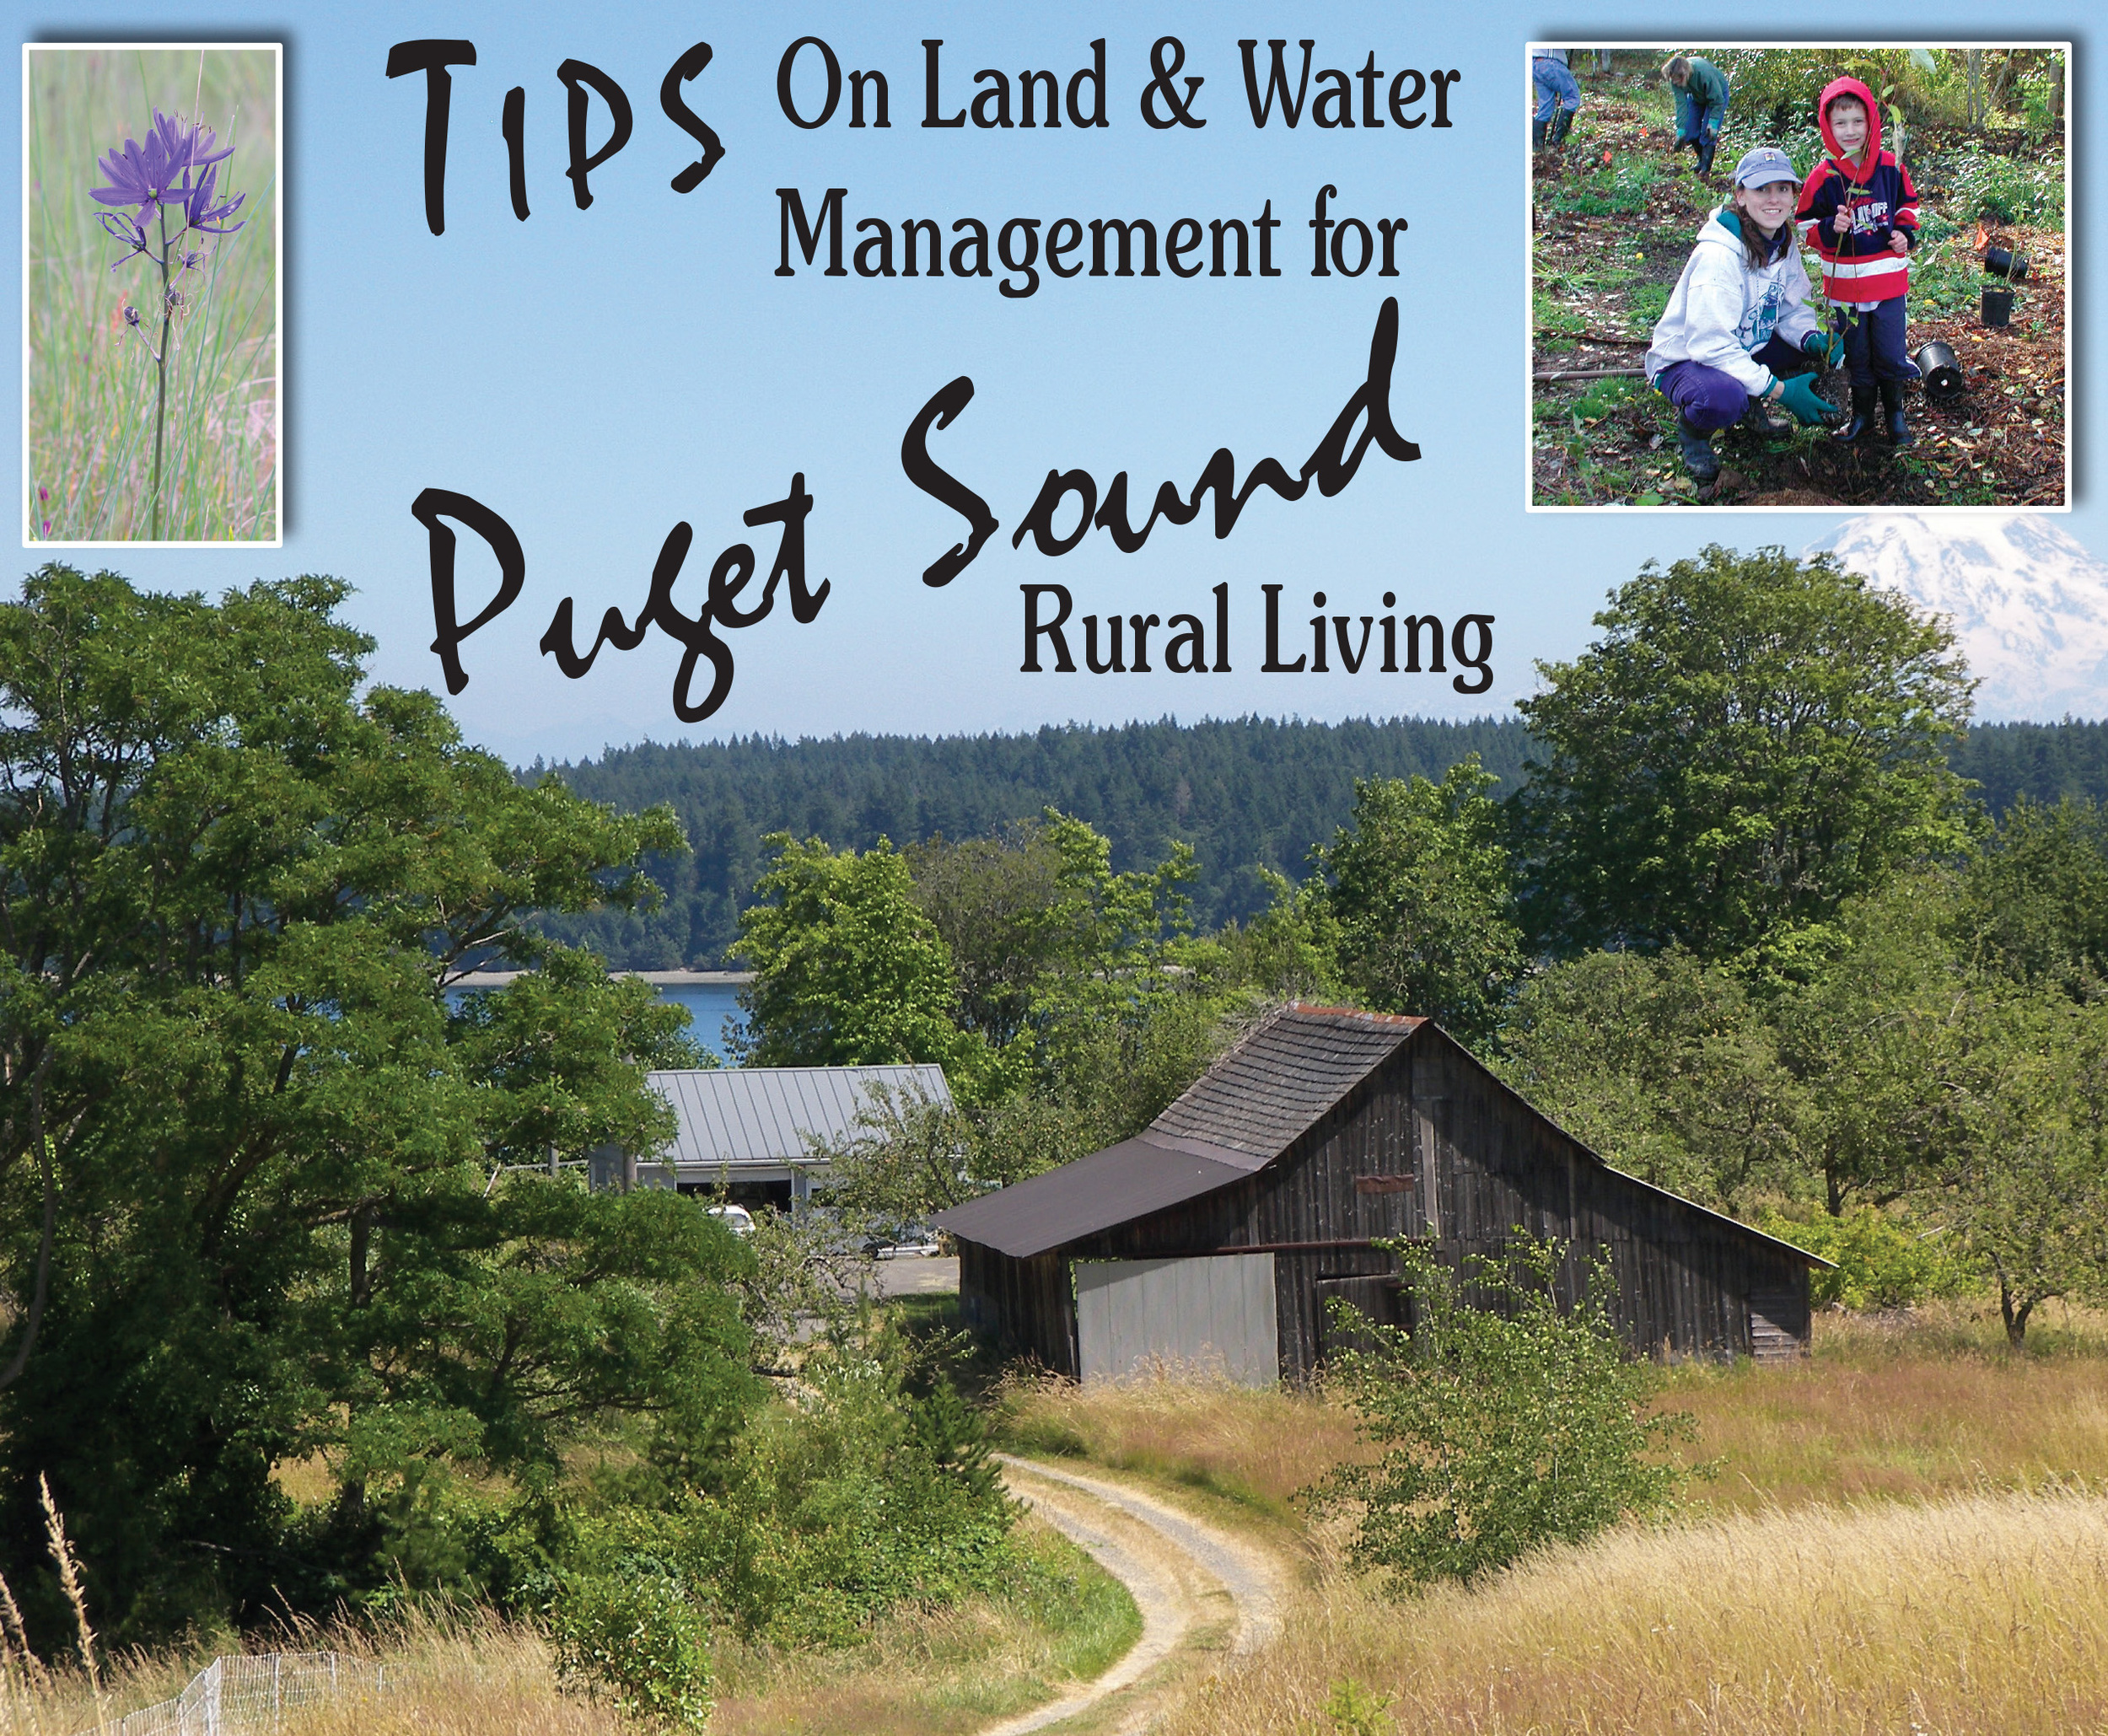 Picture of Tips for Puget Sound Rural Living Guide